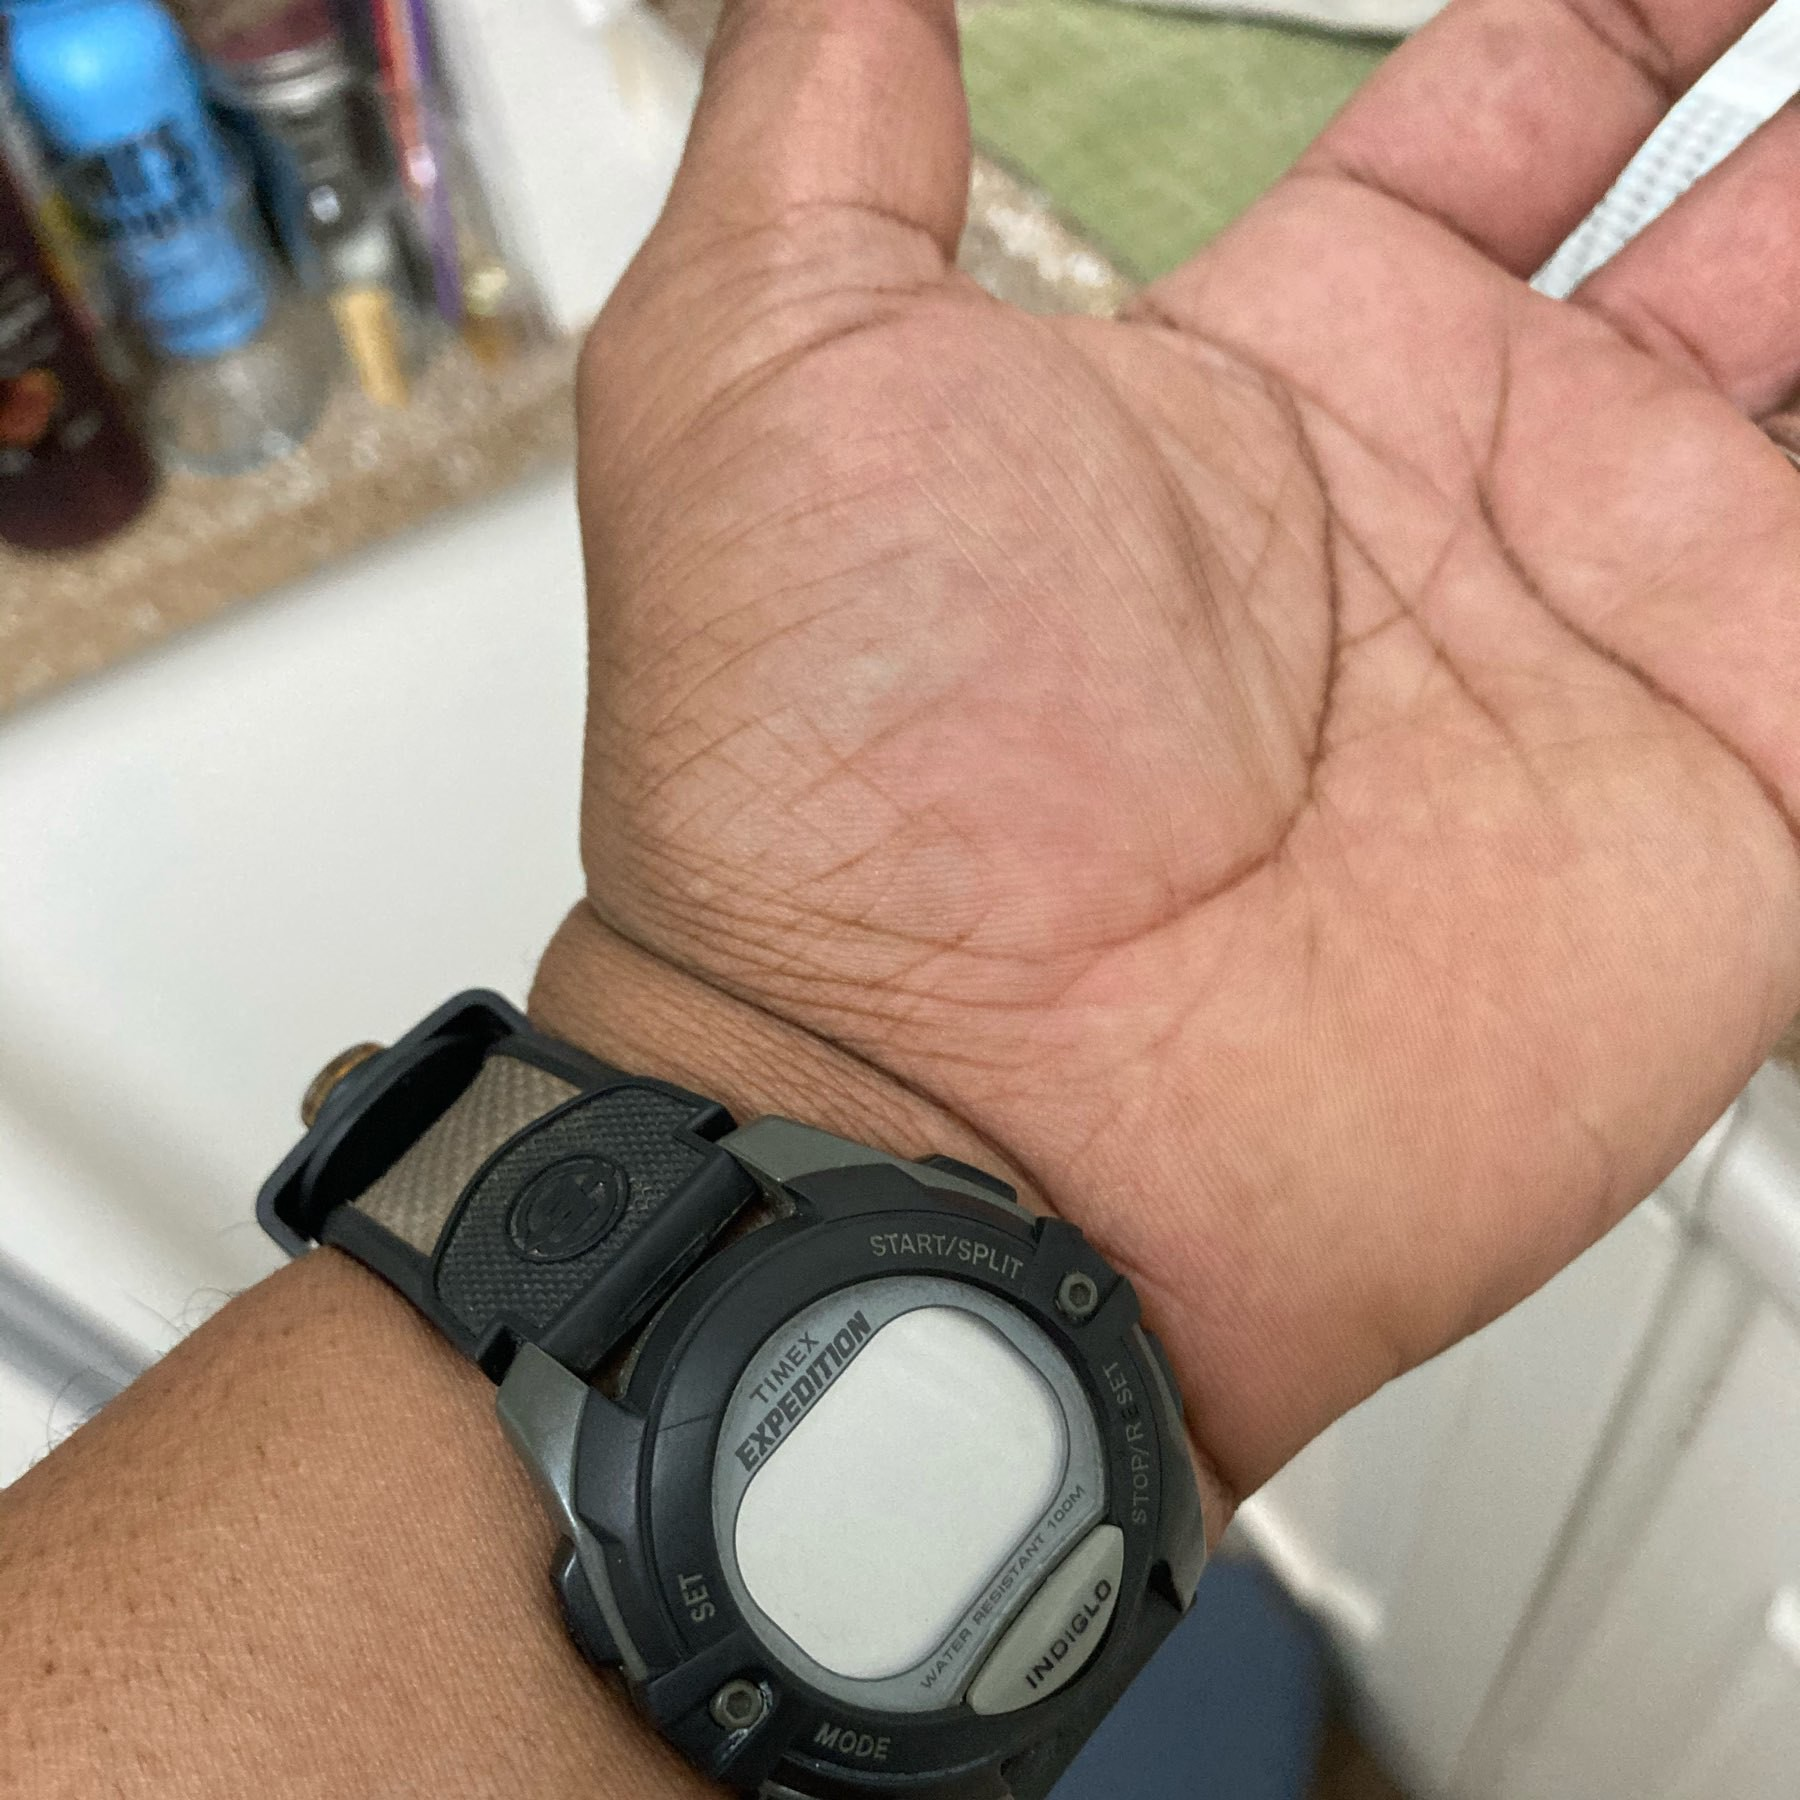 Watch with no display.